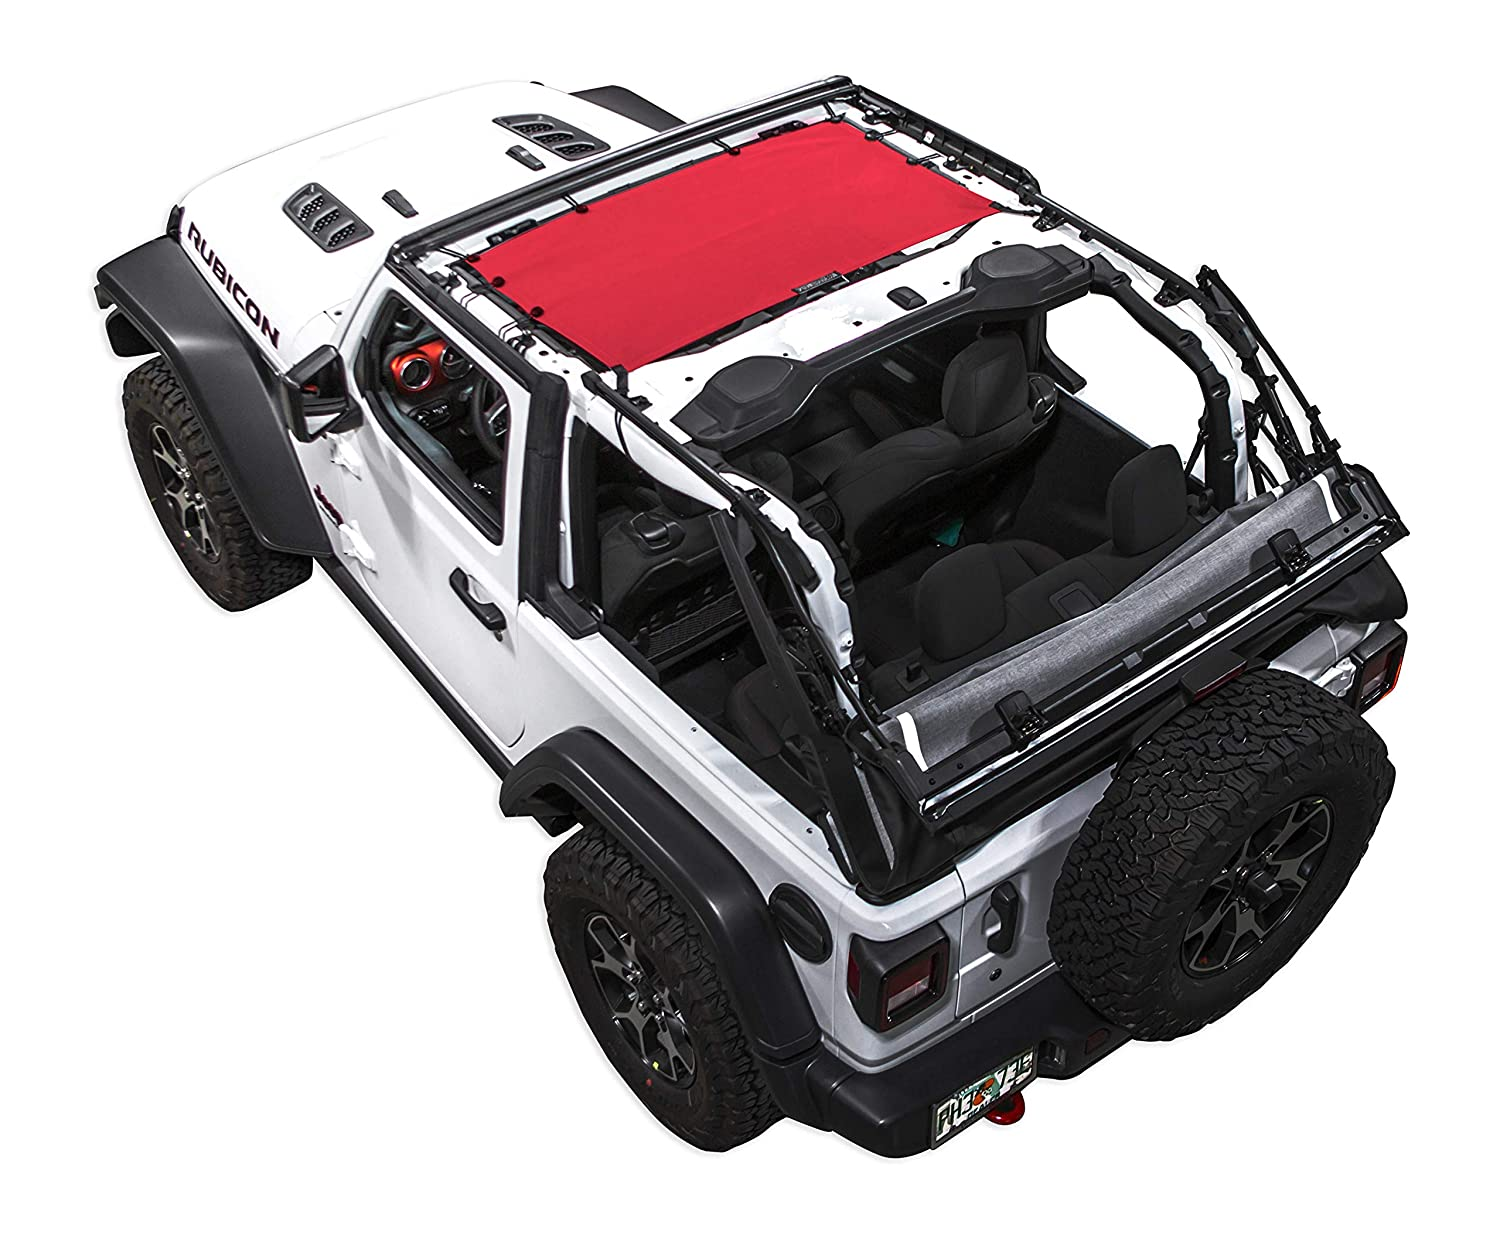 SPIDERWEBSHADE Jeep Wrangler JLKini Mesh Shade Top Sunshade UV Protection Accessory USA Made with 5 Year Warranty for Your JL 2-Door and JLU 4-Door 2018 - current in Blue